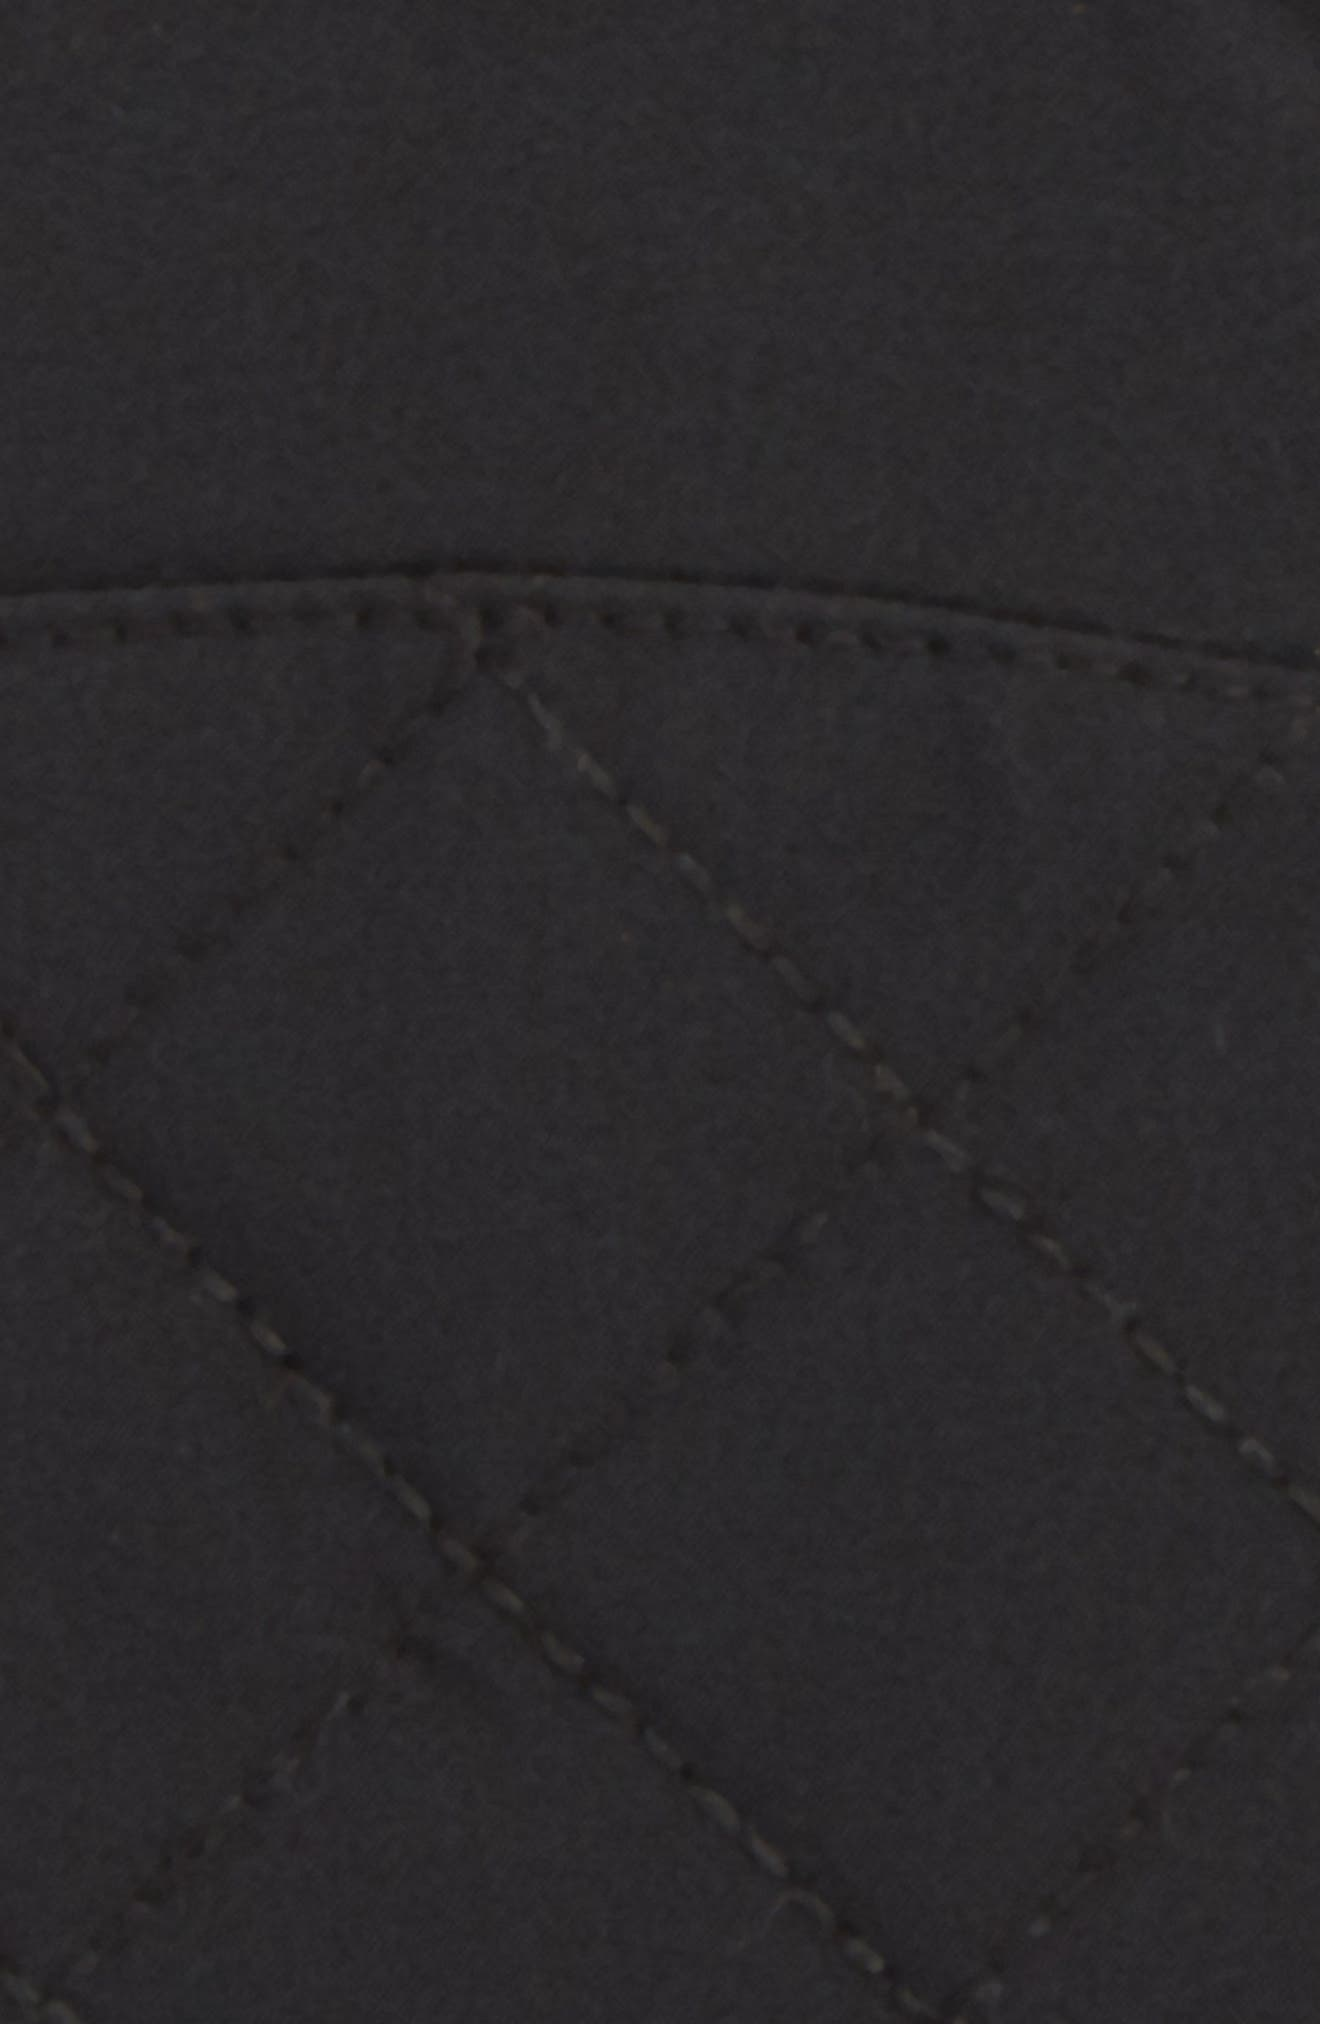 UGG<sup>®</sup> Water Resistant Touchscreen Quilted Nylon, Leather & Genuine Shearling Gloves,                             Alternate thumbnail 3, color,                             001